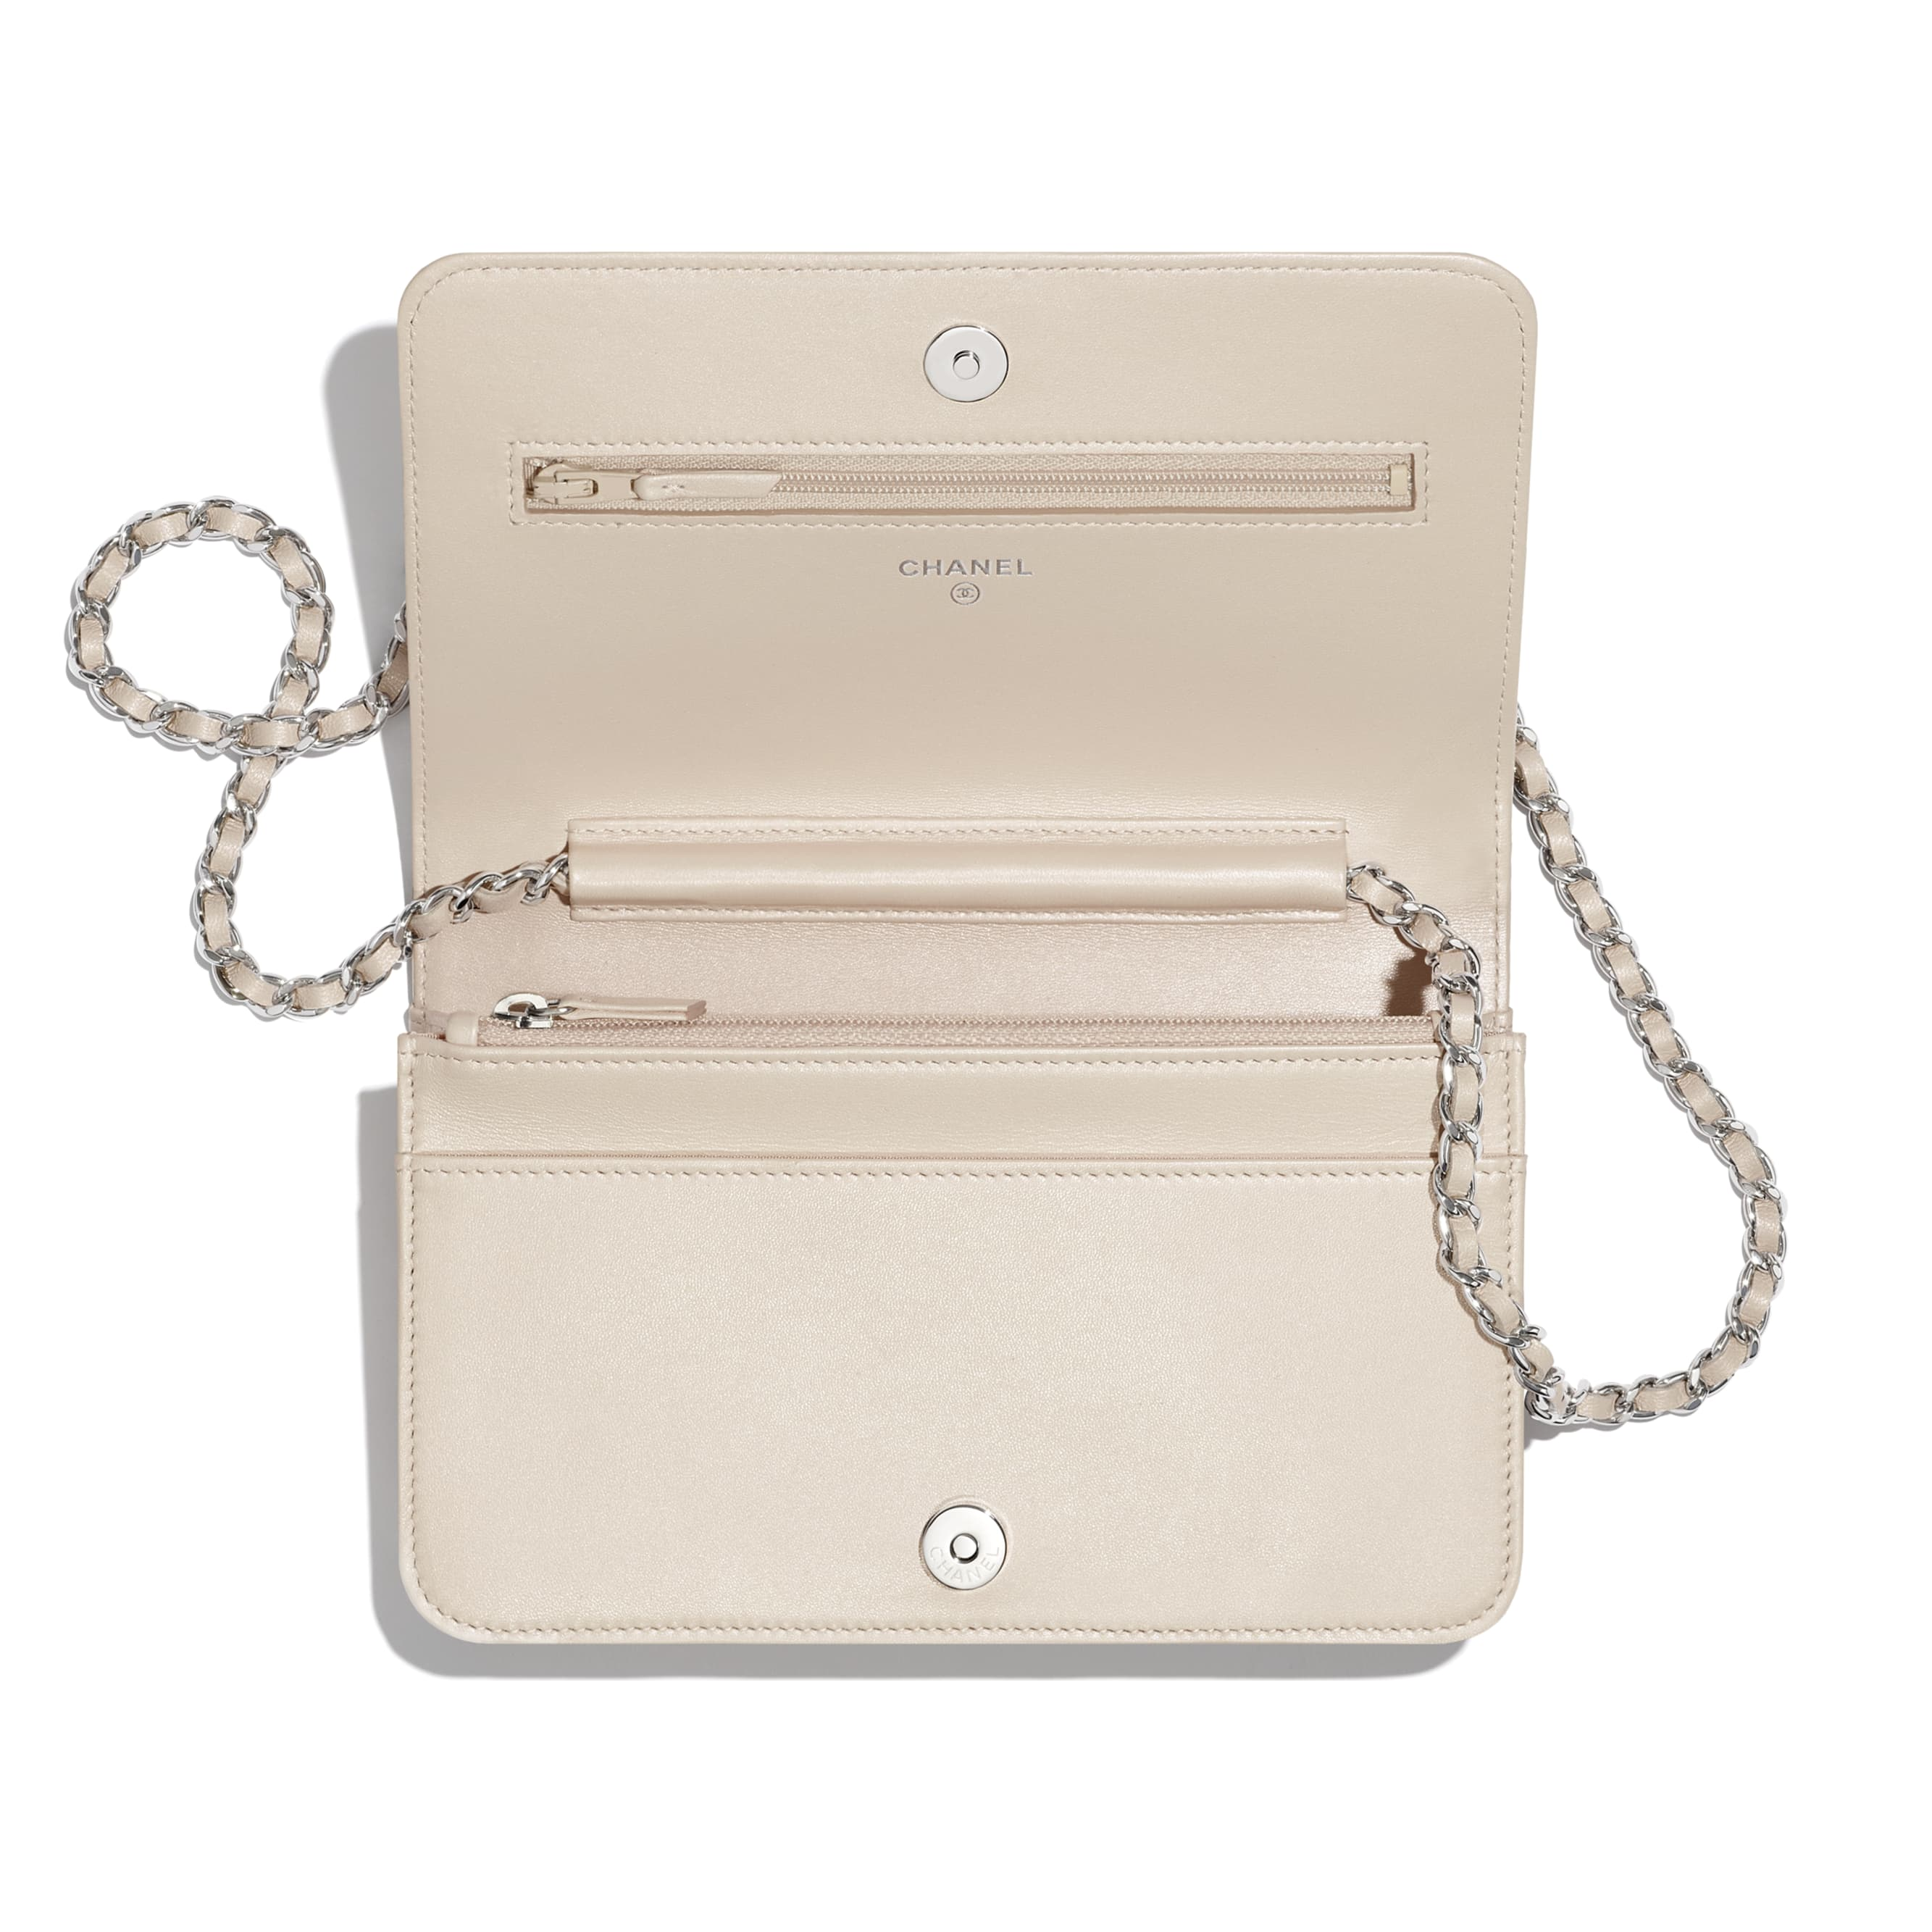 Wallet On Chain - Beige - Grained Calfskin, Calfskin & Silver-Tone Metal - CHANEL - Other view - see standard sized version